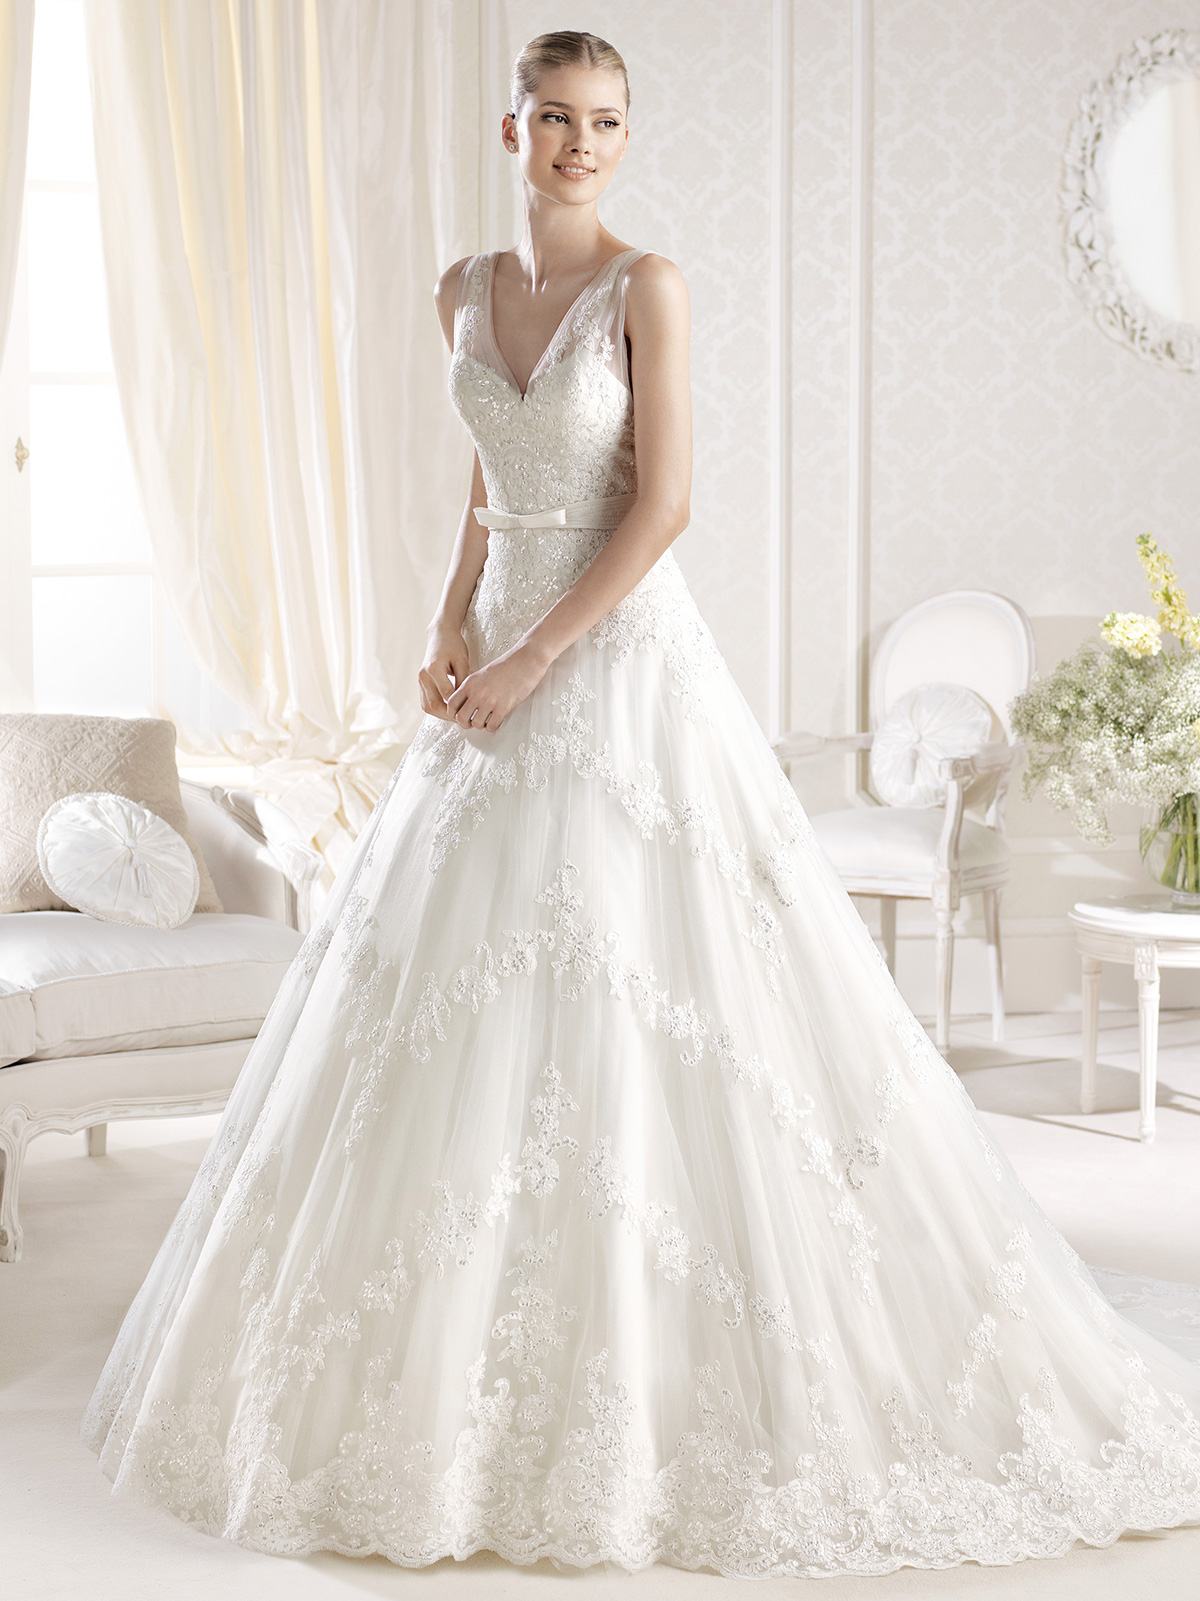 Super fashion dress la sposa wedding dresses for La sposa wedding dress